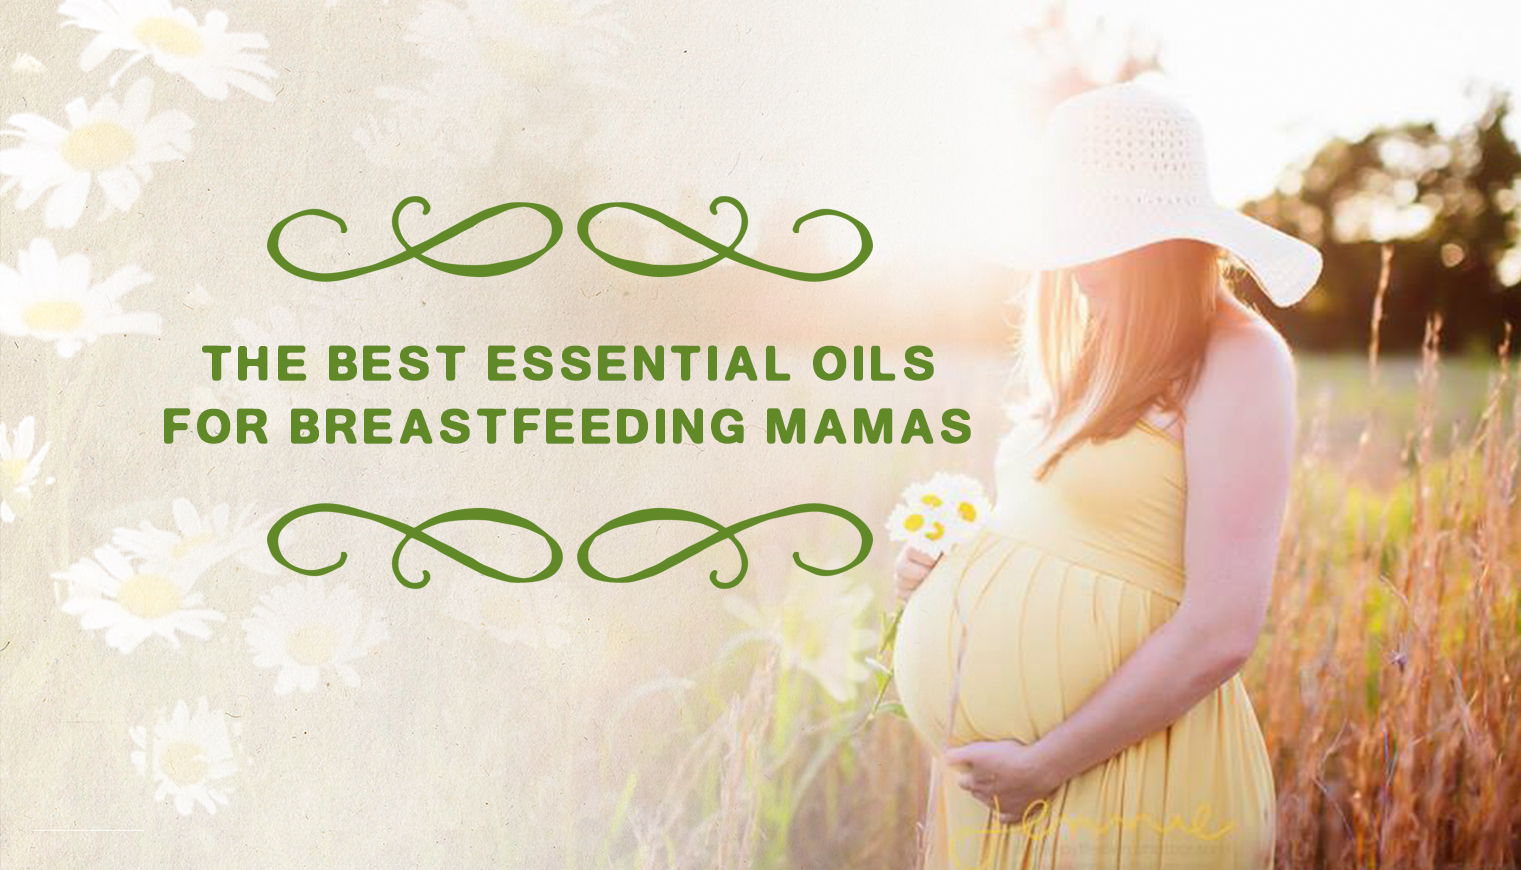 The Best Essential Oils for Breastfeeding Mamas